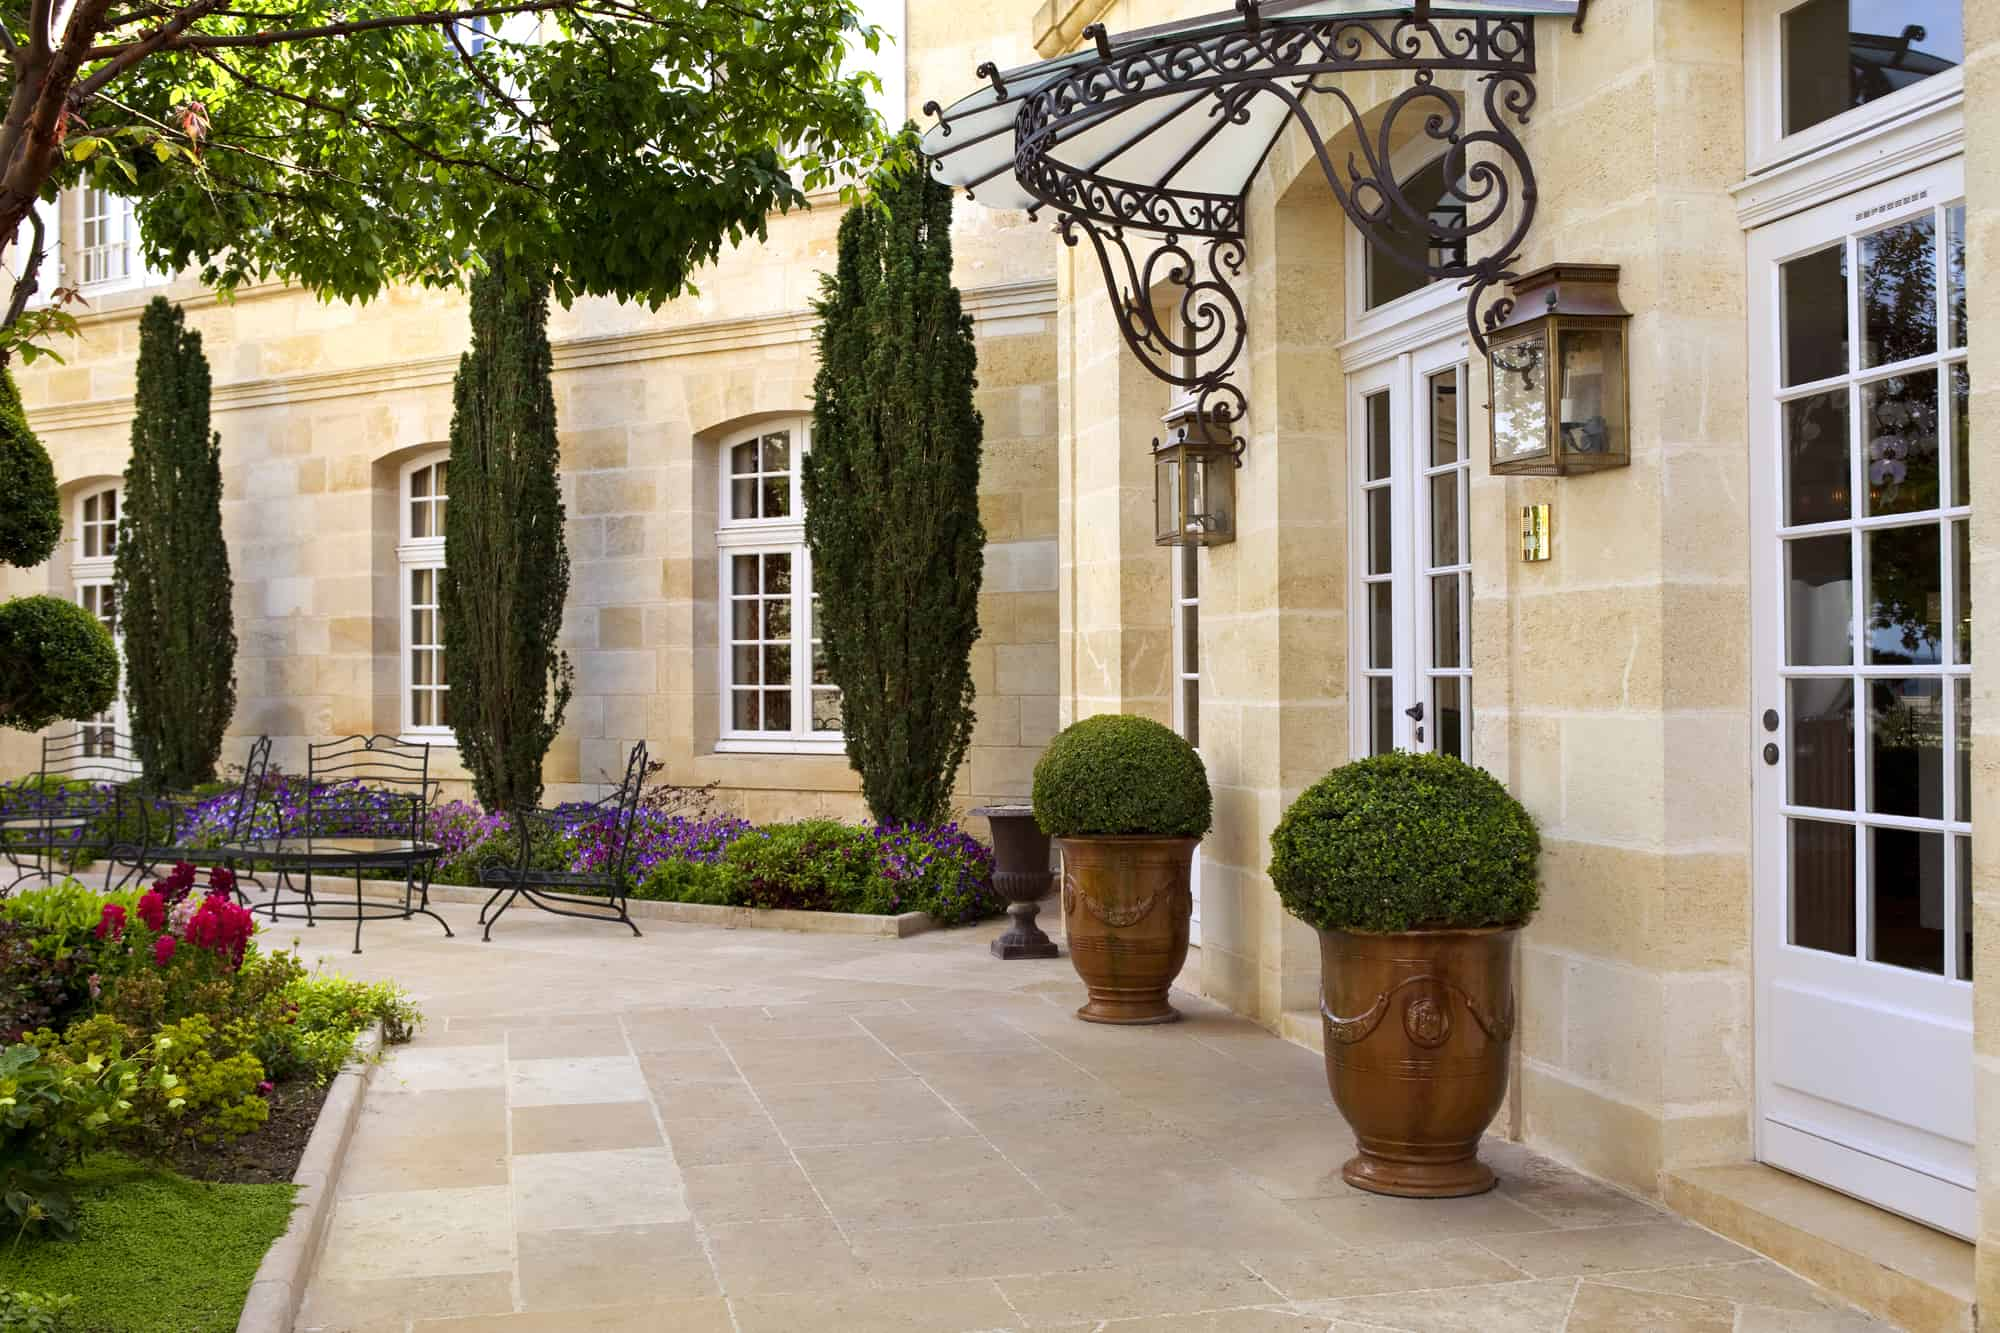 Terrace and garden of a French mansion